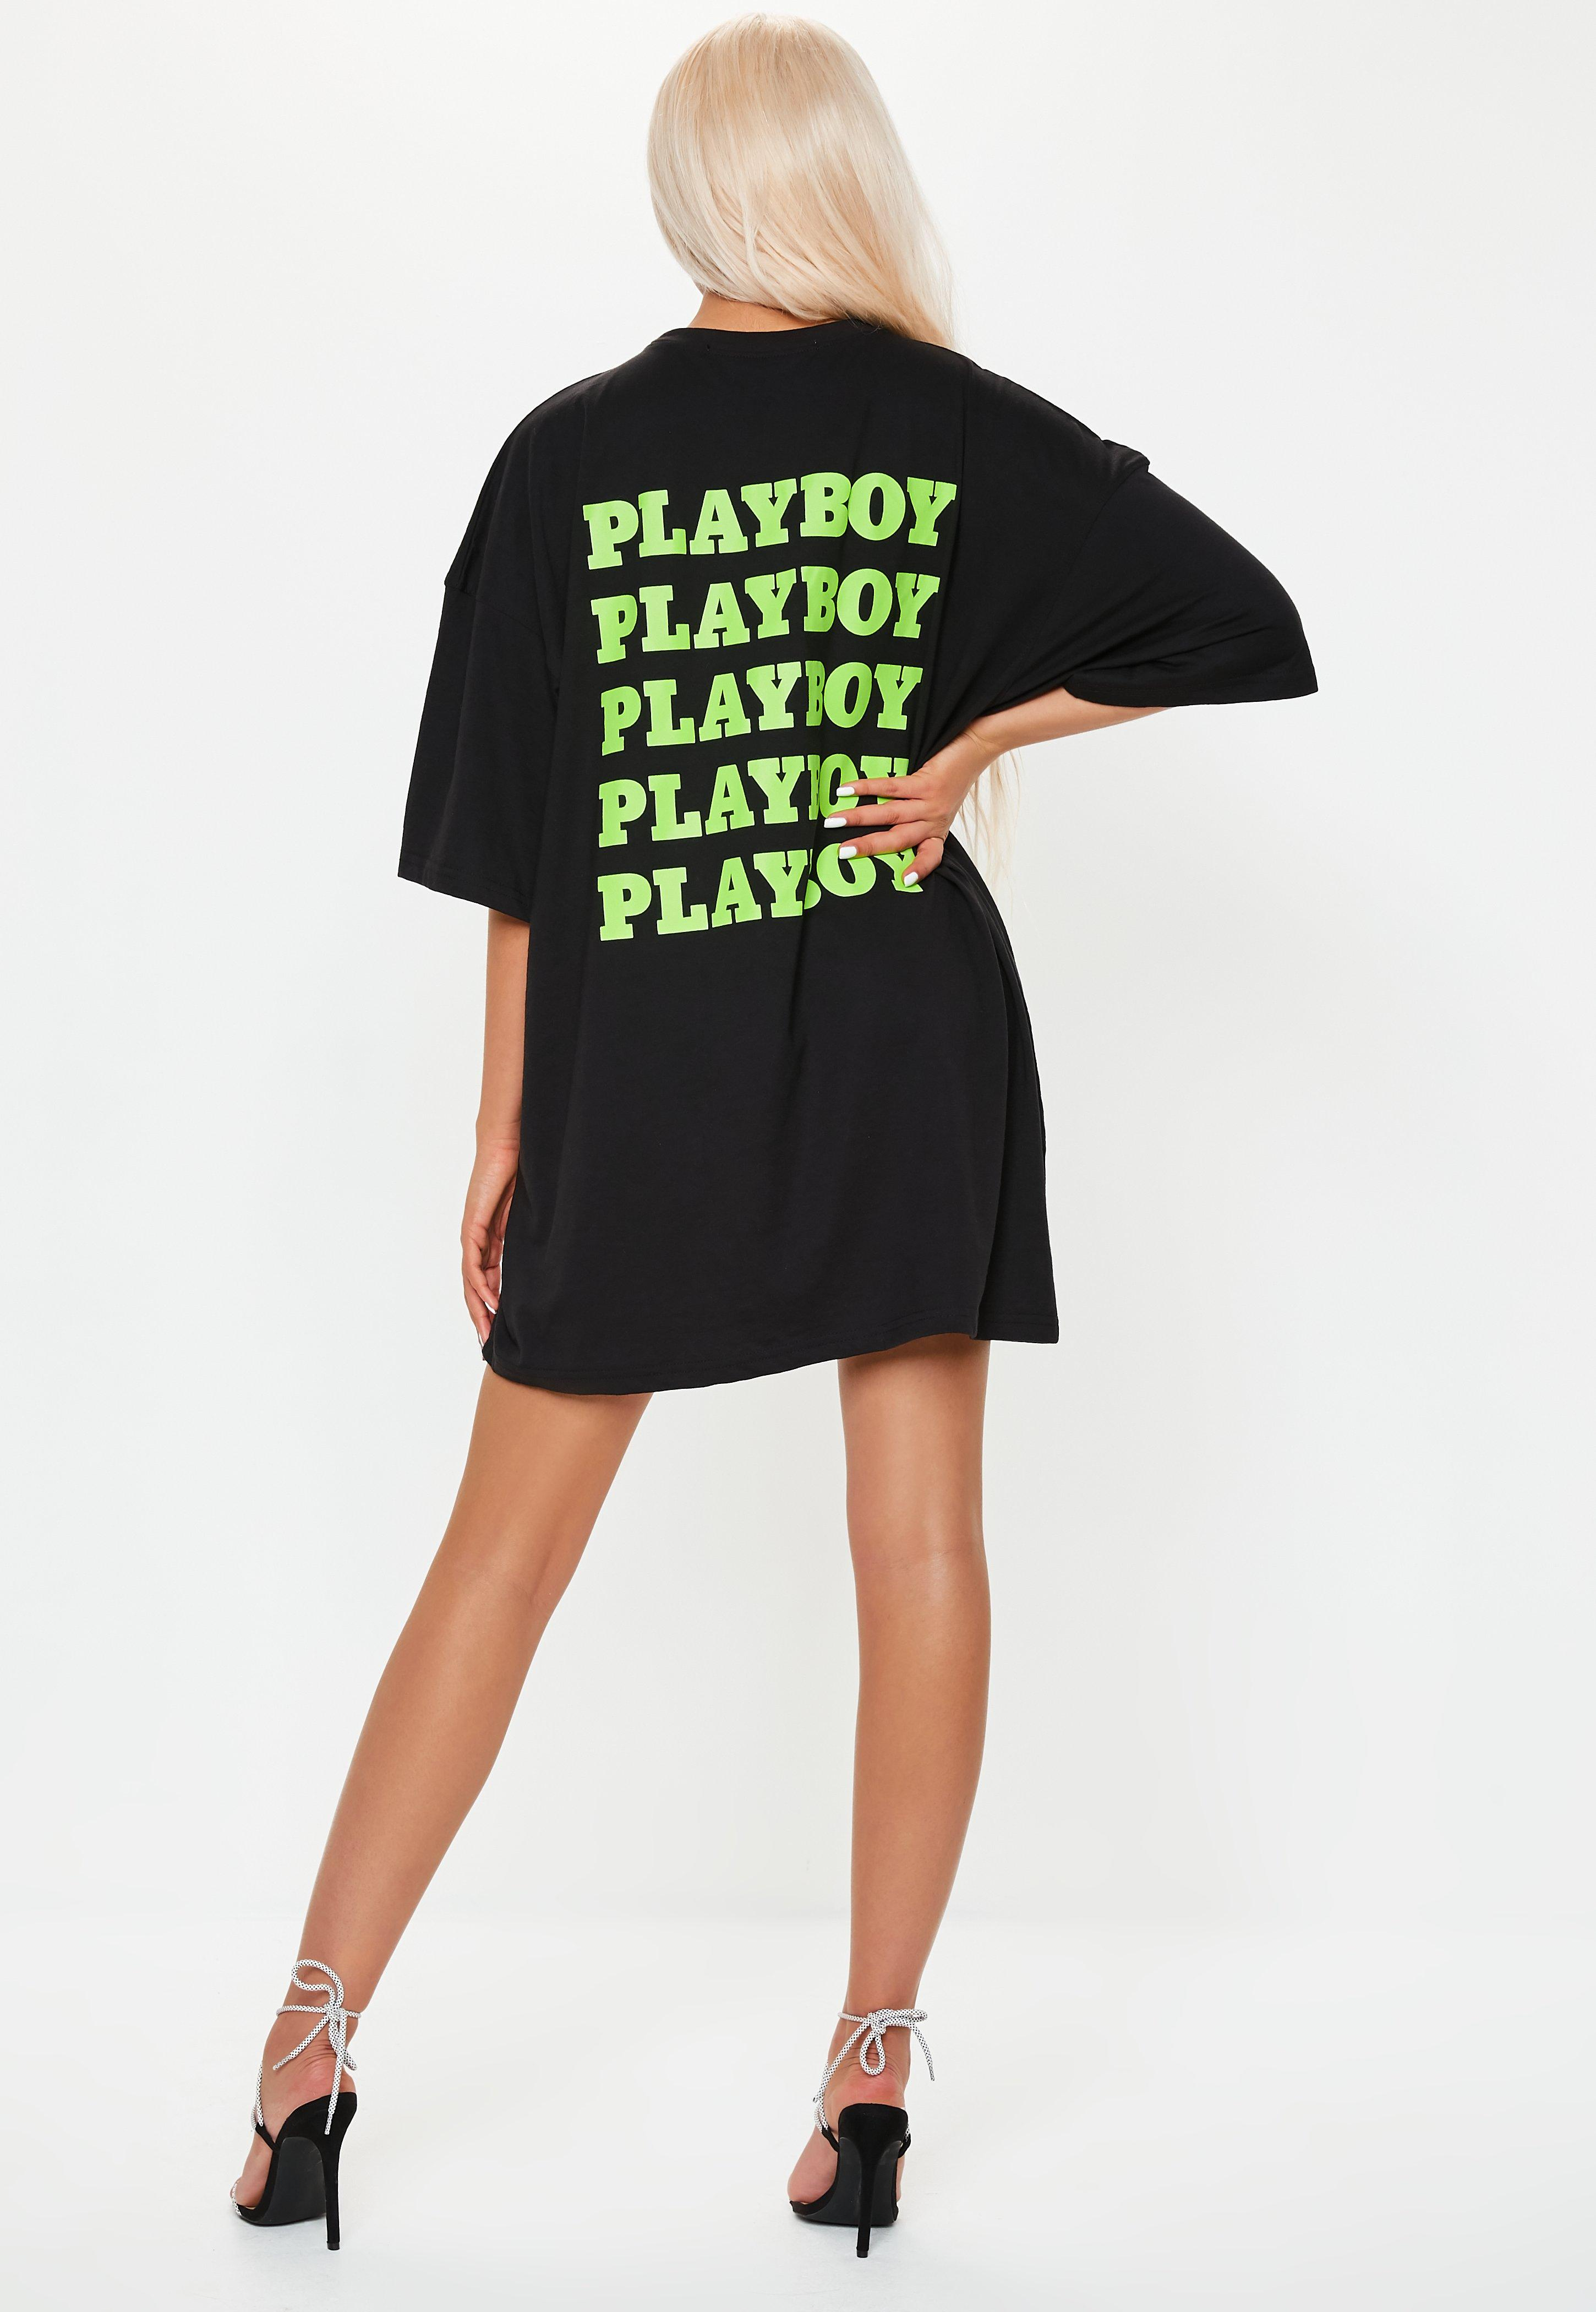 f3298bfe965a Playboy Clothing